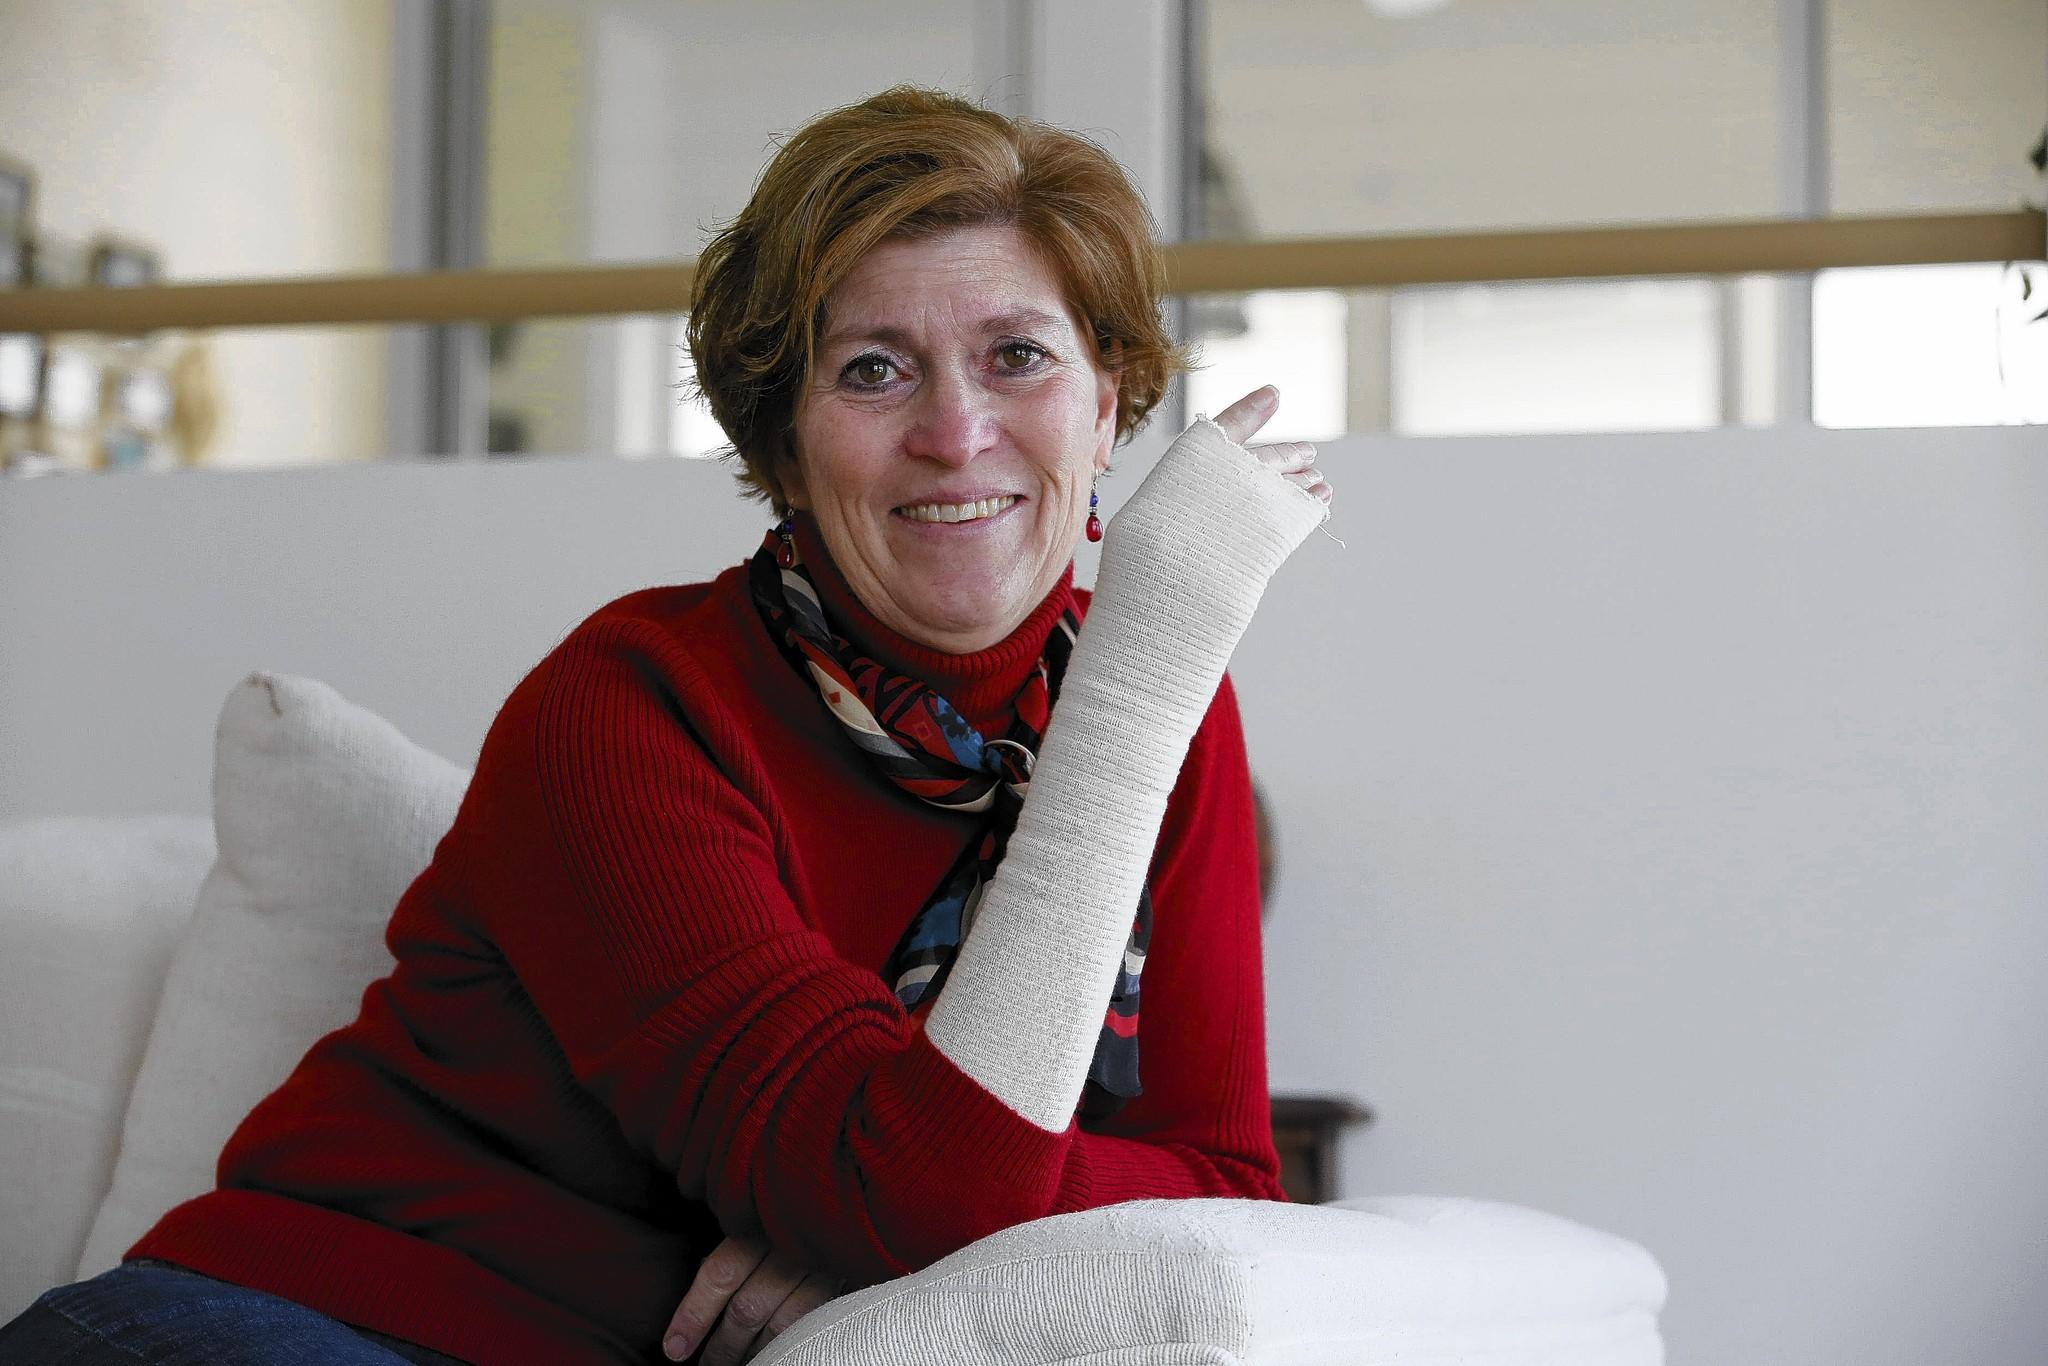 Darien resident Paula Wallrich broke her right hand in December when she fell in the intersection at 49th Street and Woodlawn Avenue in Chicago. Four men helped her during her ordeal, but she doesn't know their names or where to find them in order to thank them.